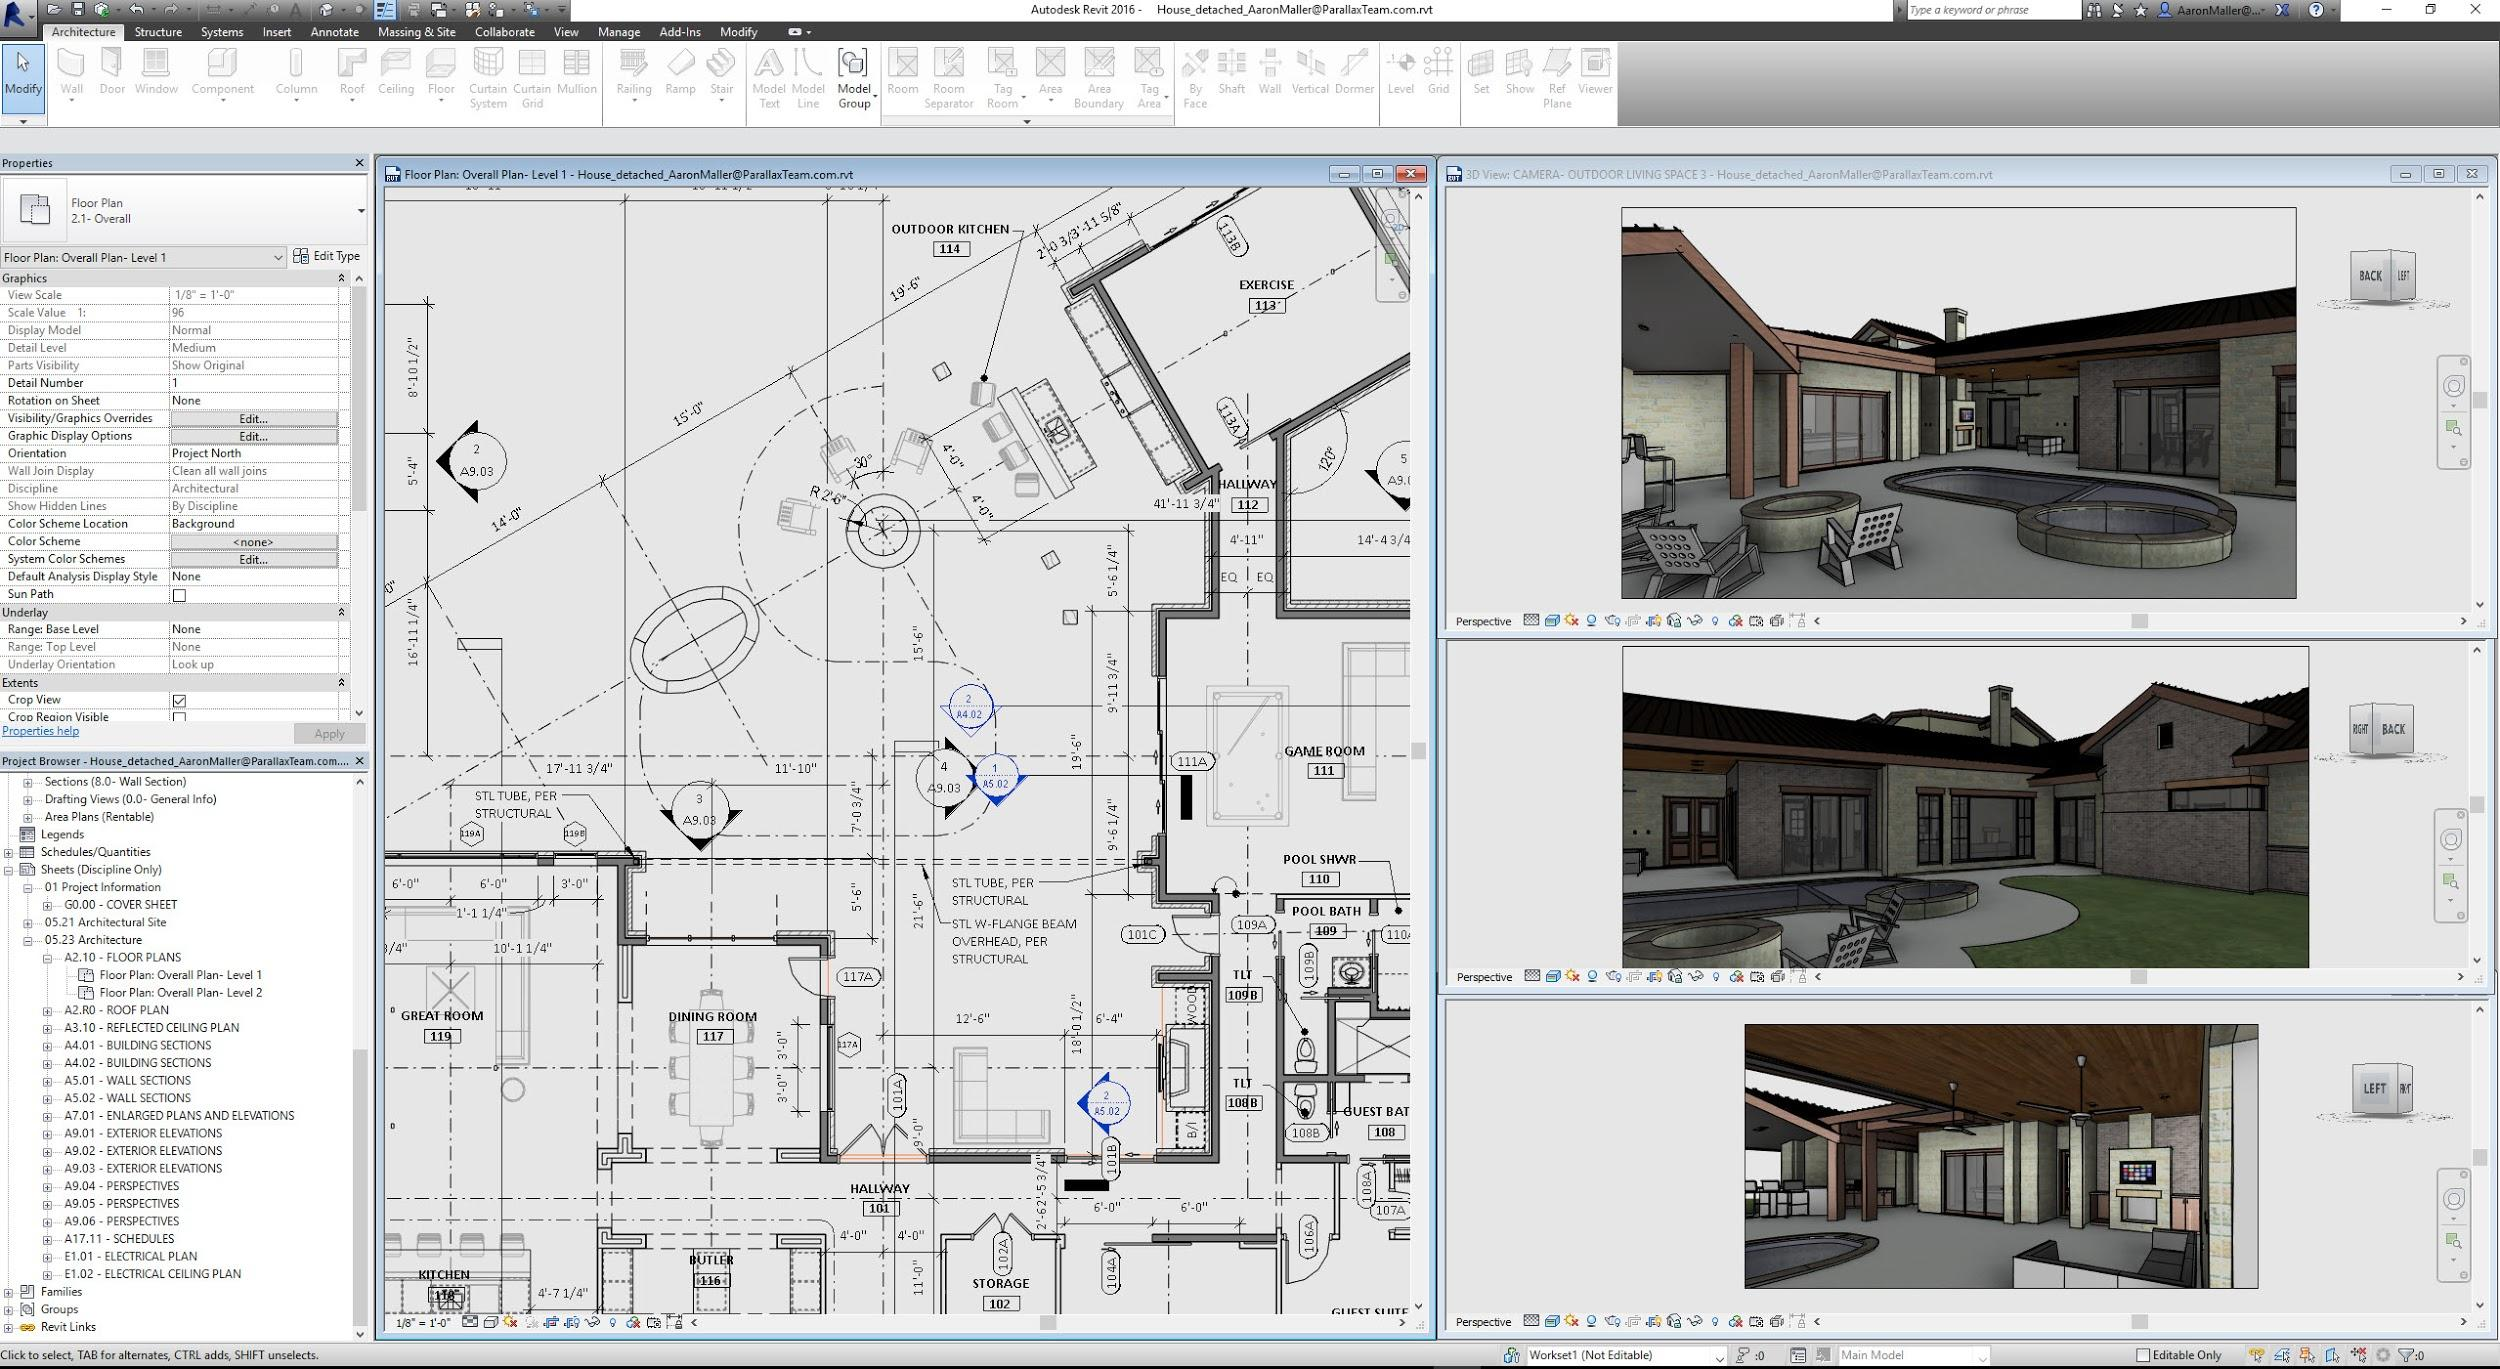 11 Free Bim Software Tools To Consider G2 Crowd 2d Cad Drafting Program Just Like Autocad Lt Image Courtesy Of Revit An Autodesk Company